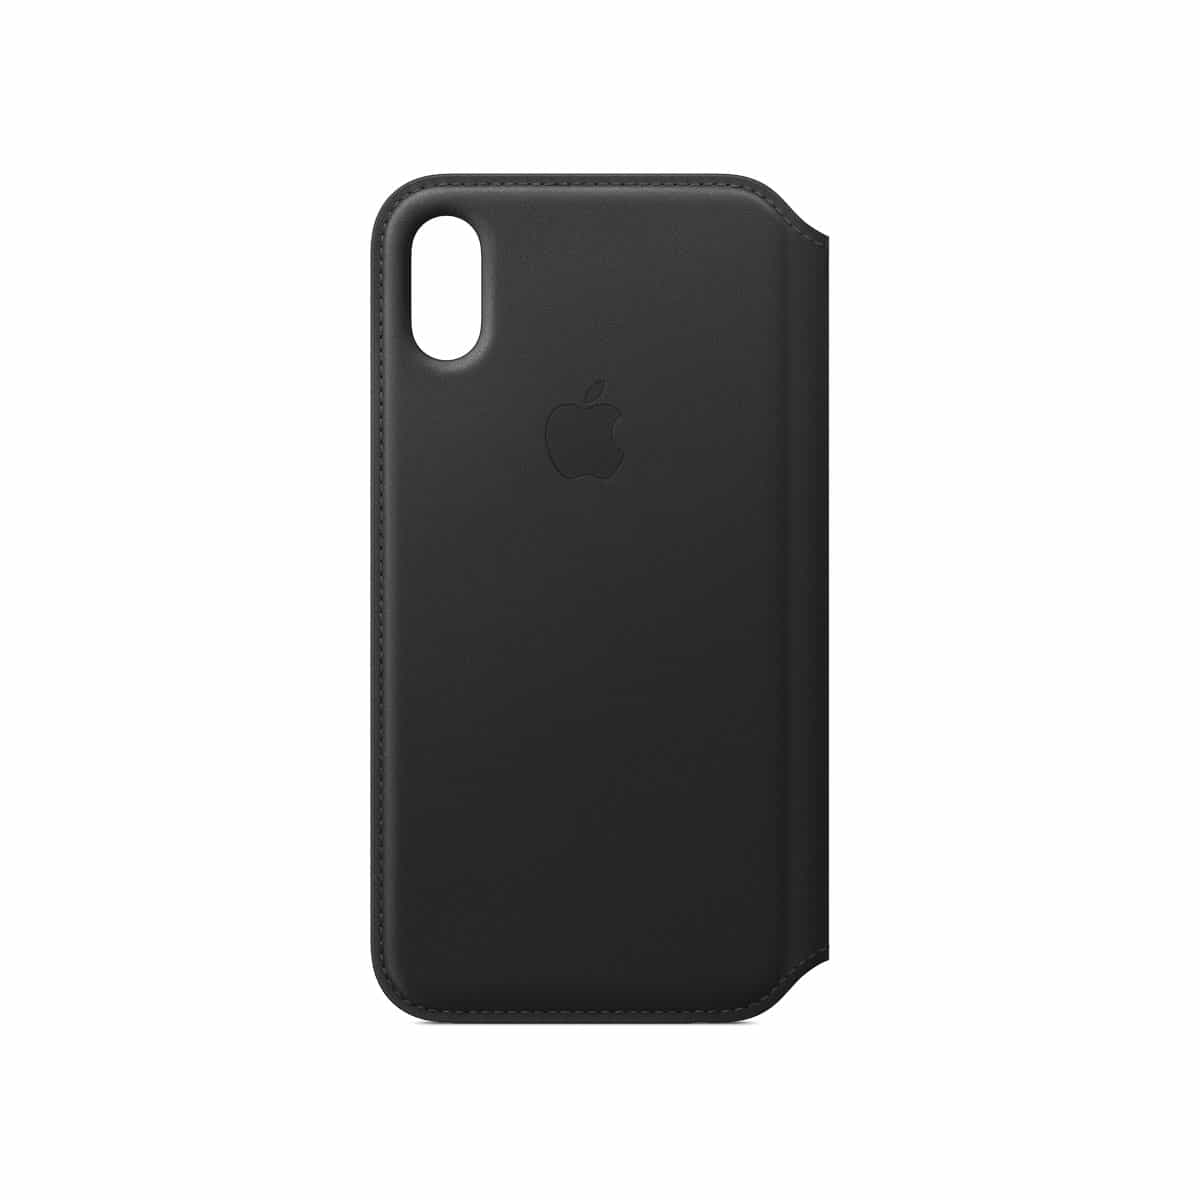 iPhoneX-2017-Lthr-Folio-Black-SCREEN